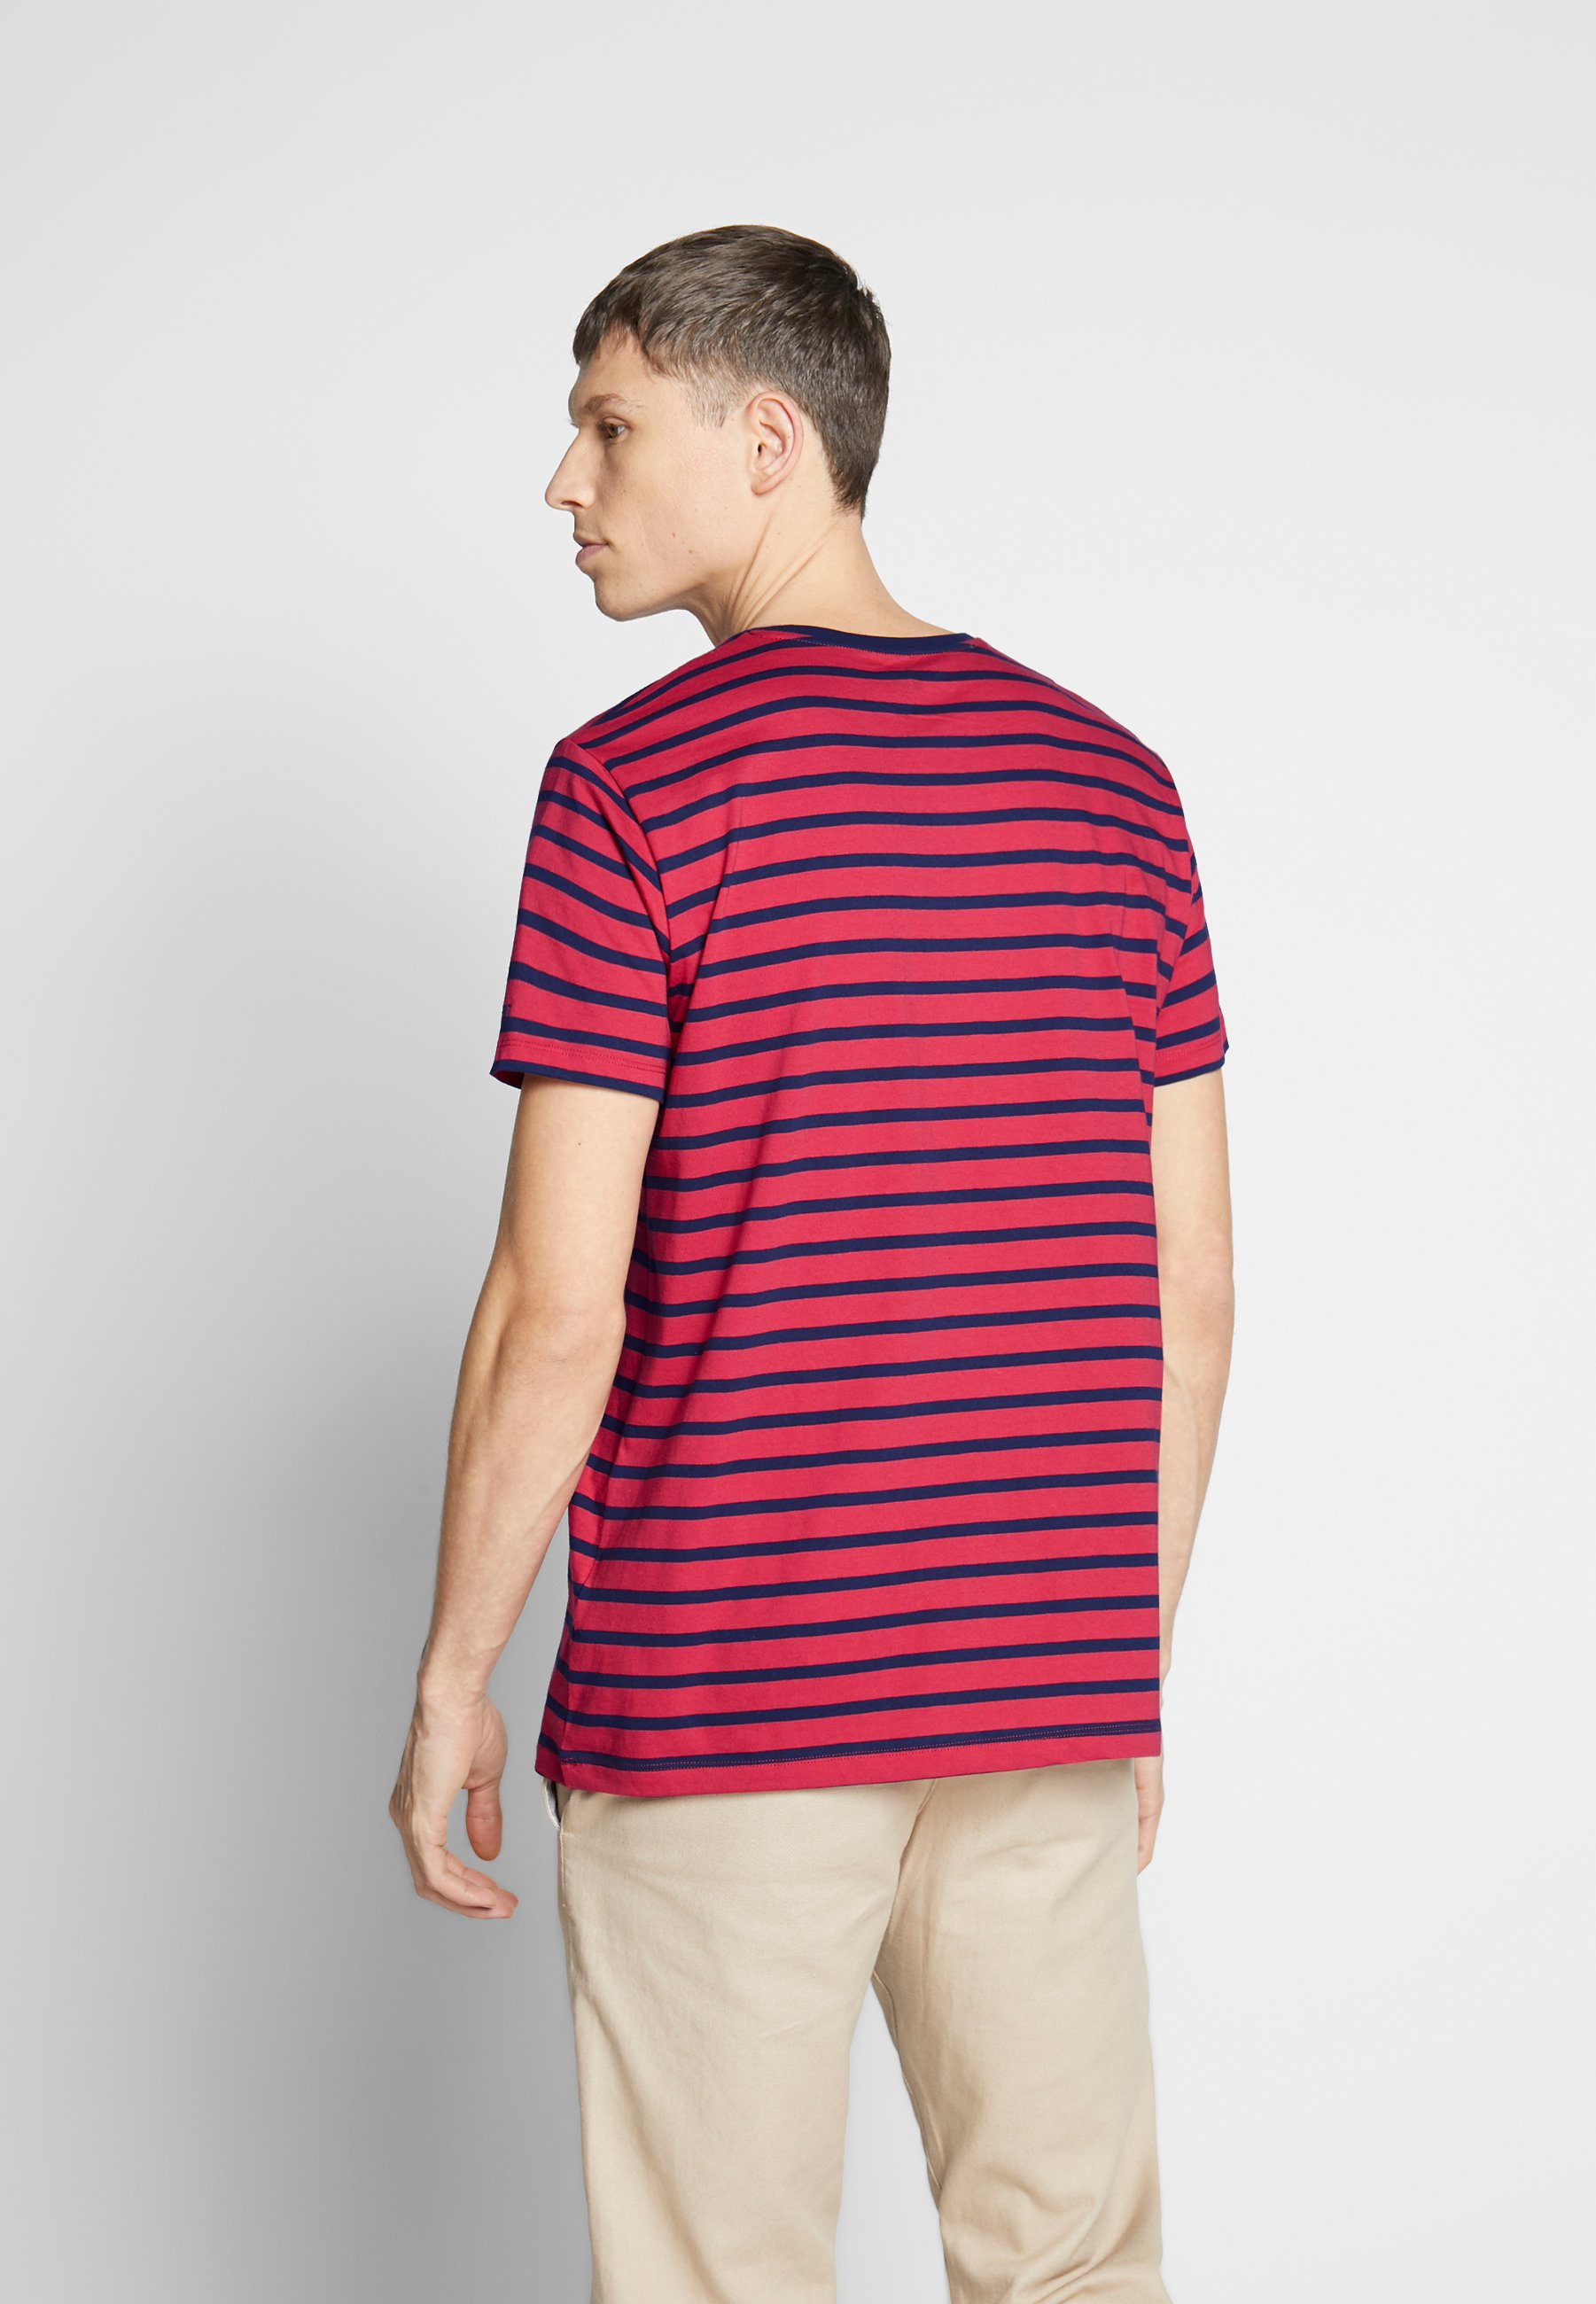 Esprit Print T-shirt - red CypZN